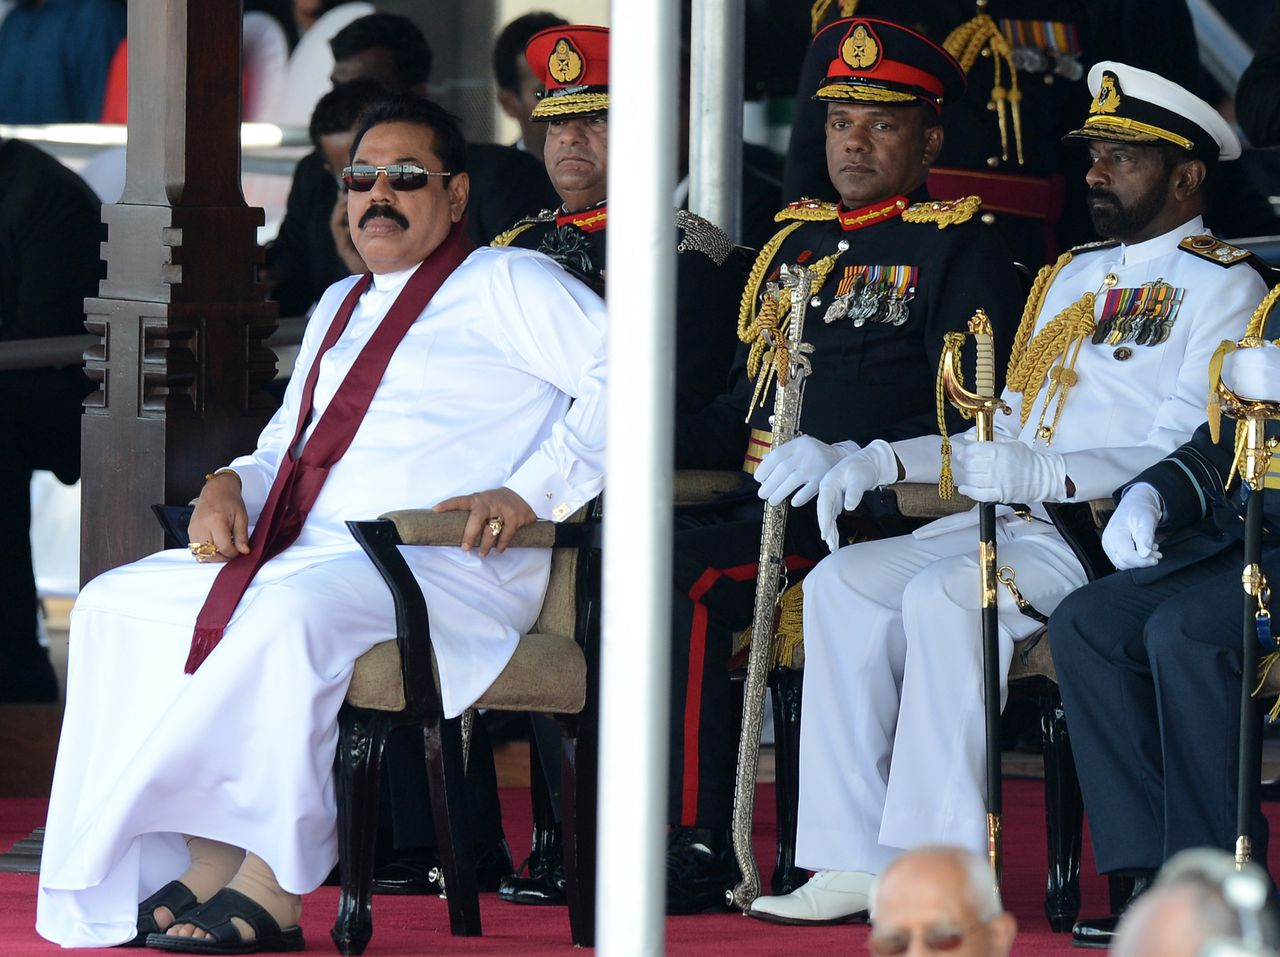 De Sri-Lankese president Mahinda Rajapakse (links) in 2014.